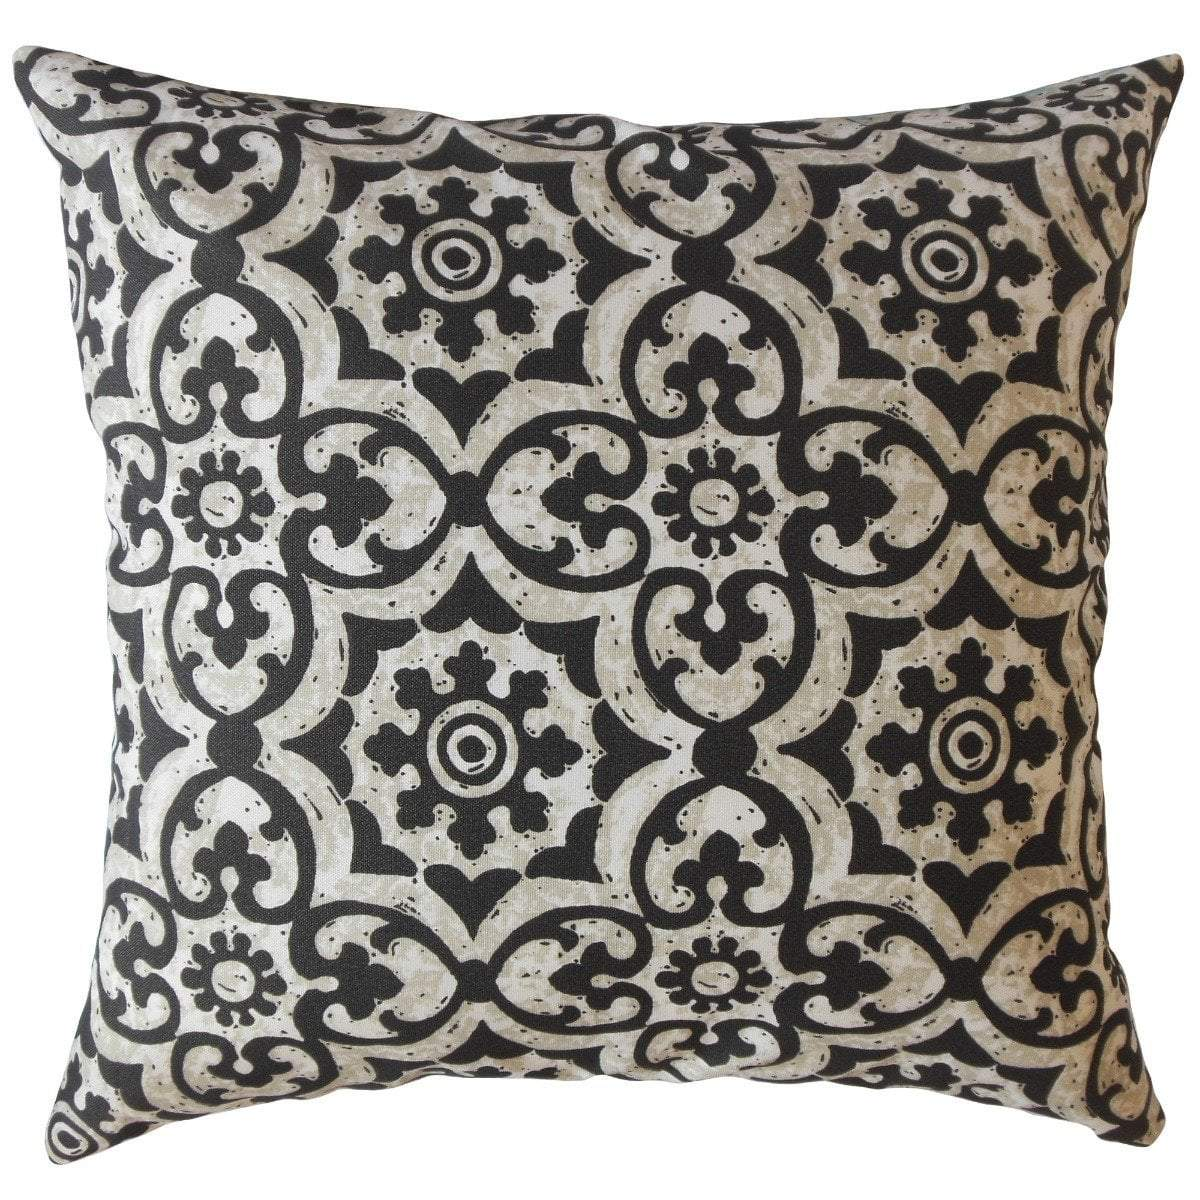 Vergara Throw Pillow Cover